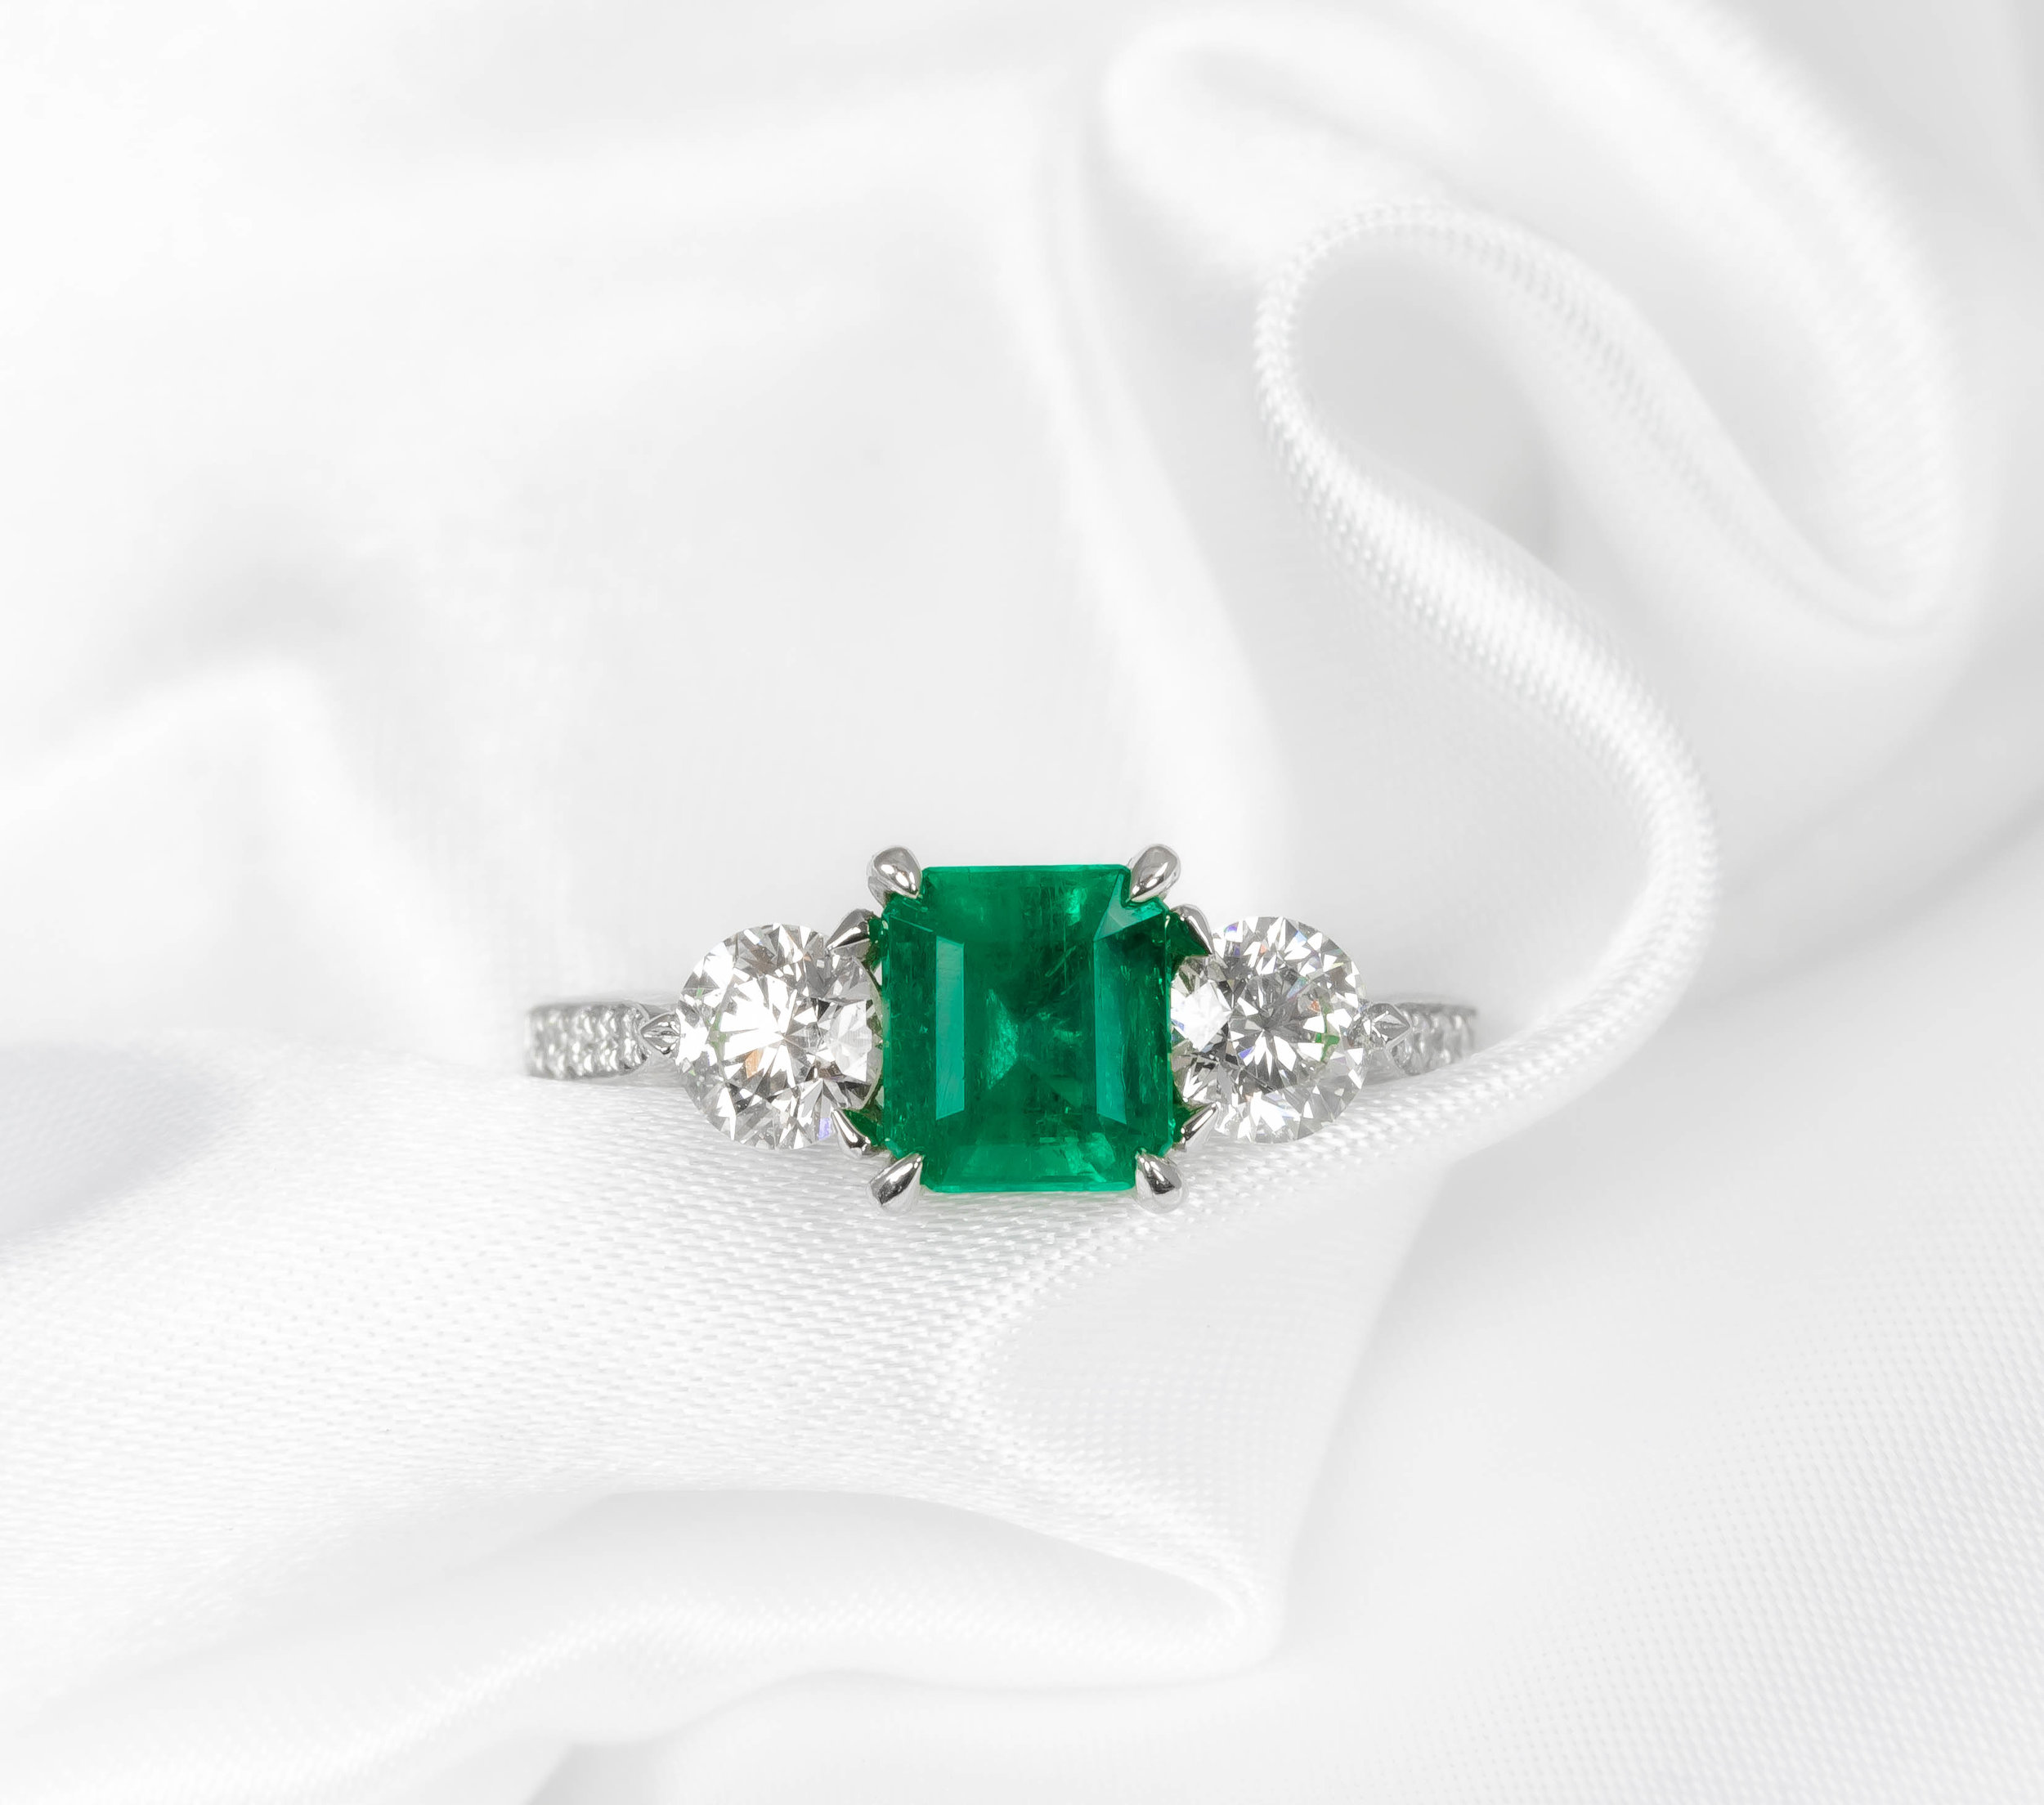 Platinum mounted, emerald and diamond three stone claw set ring with grain set diamond shoulders. Made in Chichester, England.